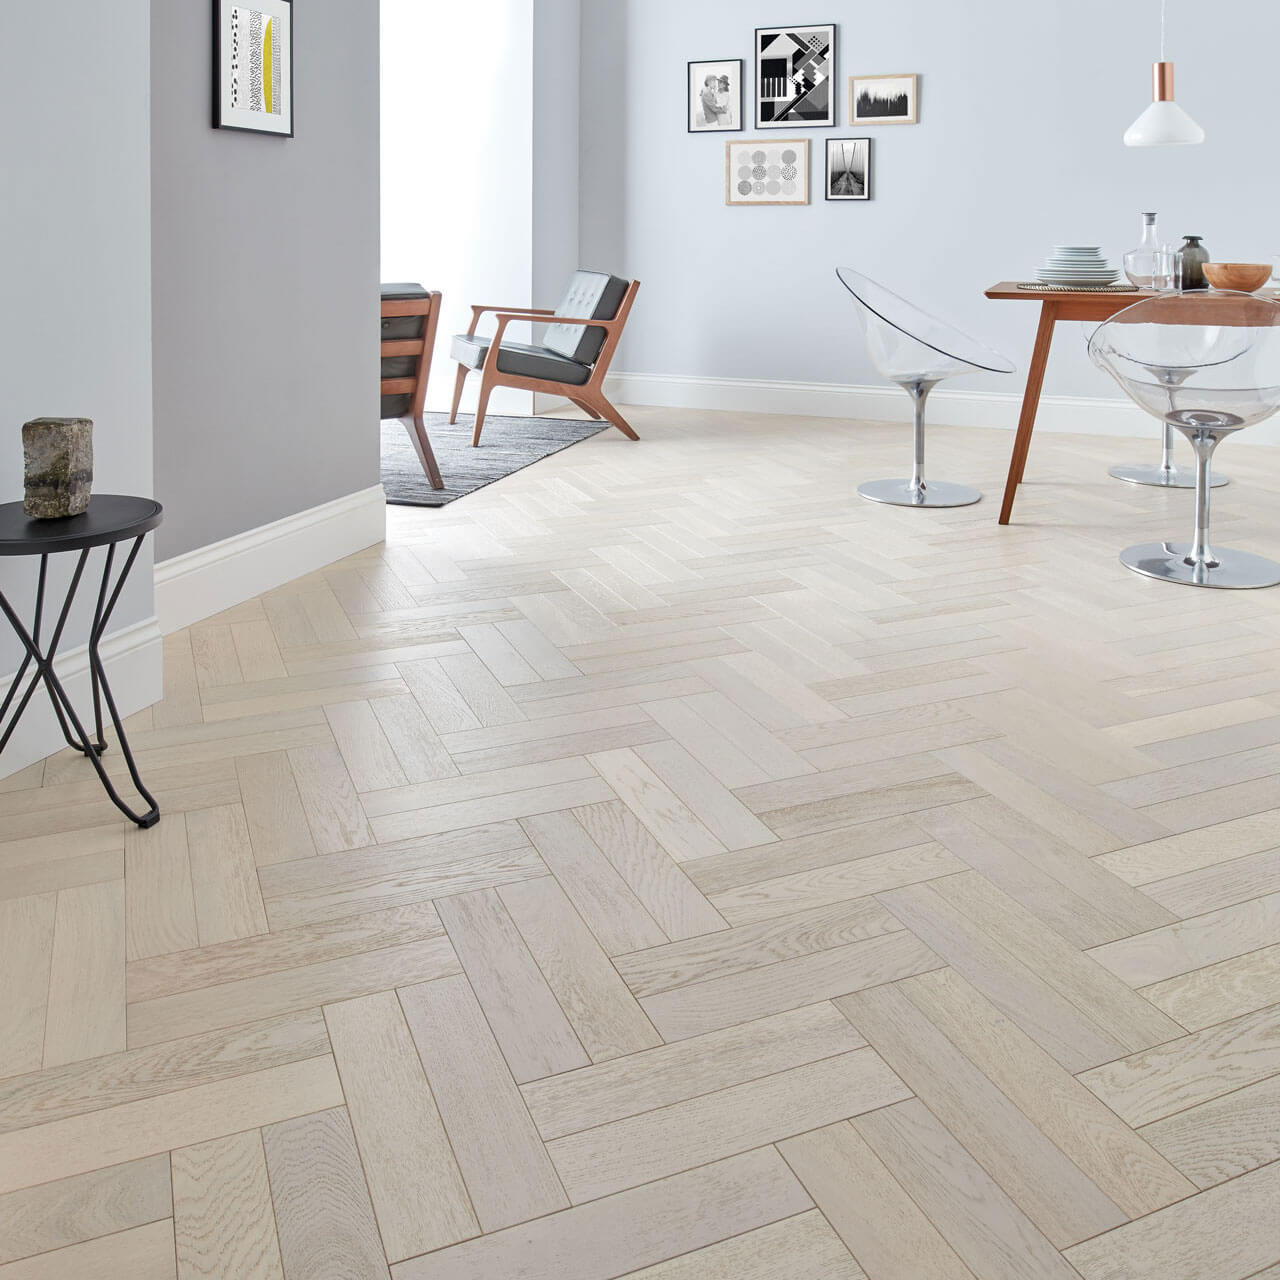 Woodpecker Goodrich Herringbone Whitened Oak Brushed & Matt Lacquered Engineered Wood Flooring 32-GWH-001